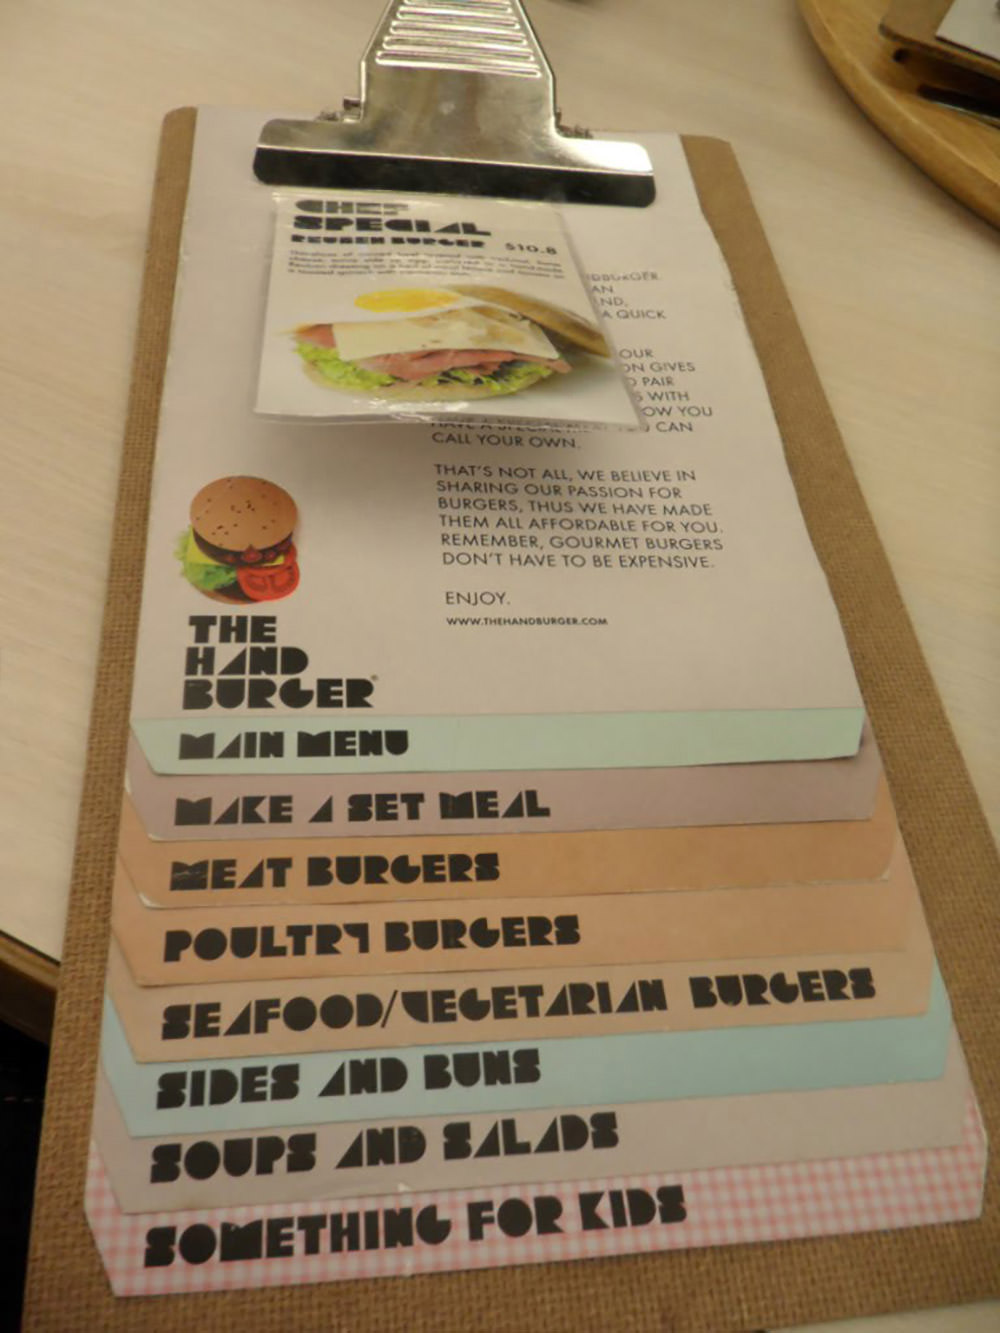 The Hand Burger by Blogspot